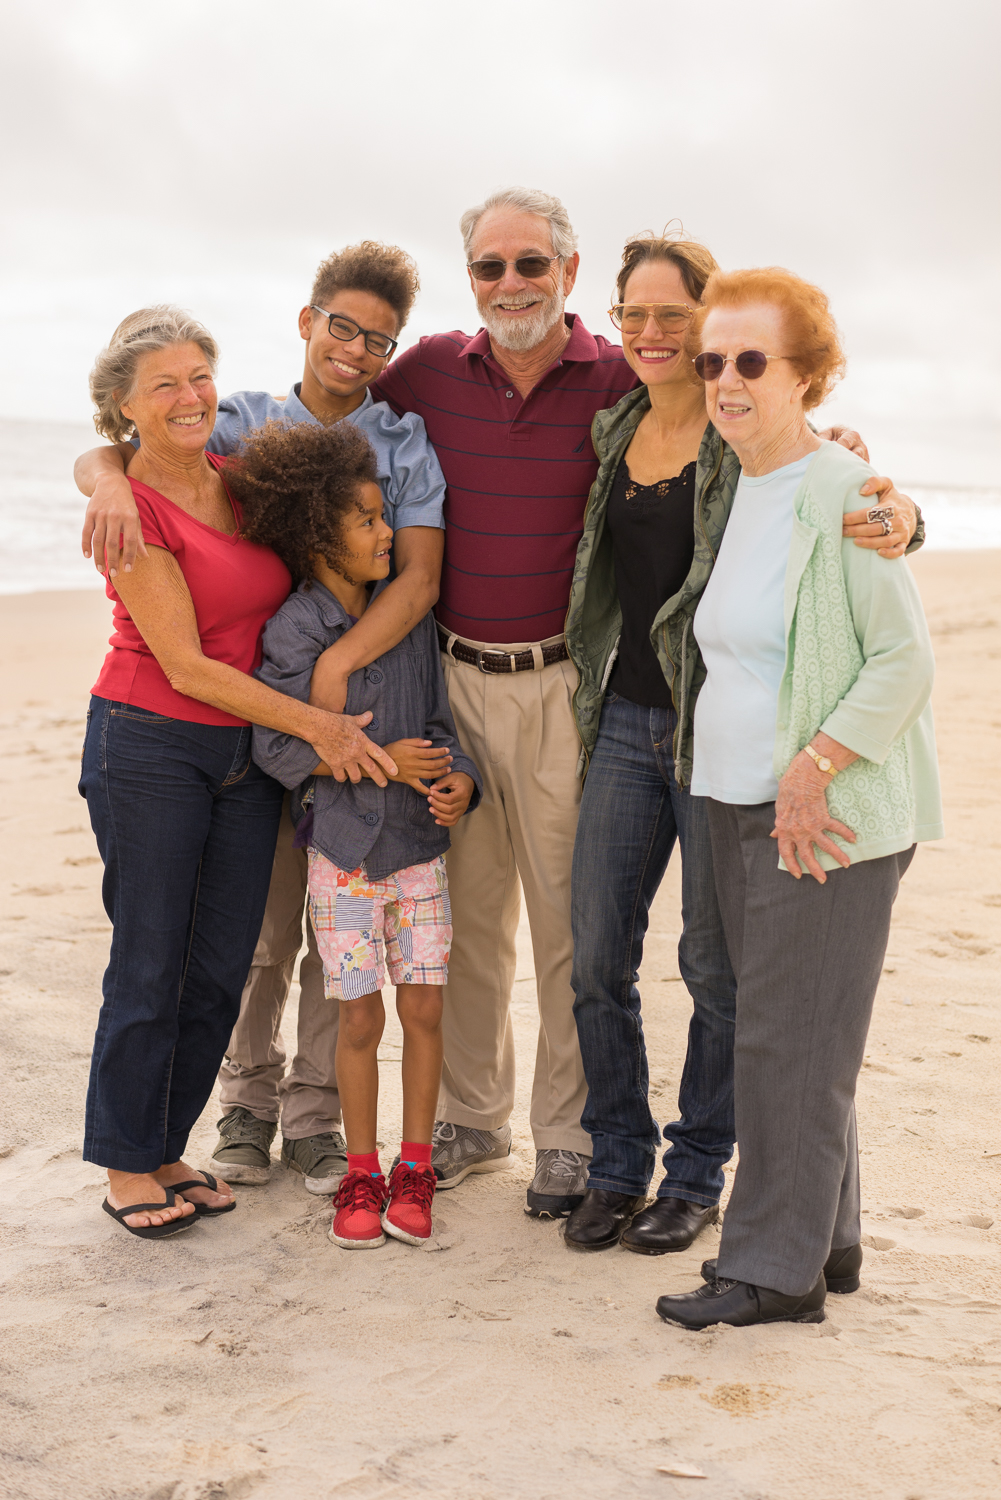 family of six on the beach-San Francisco bay area photo